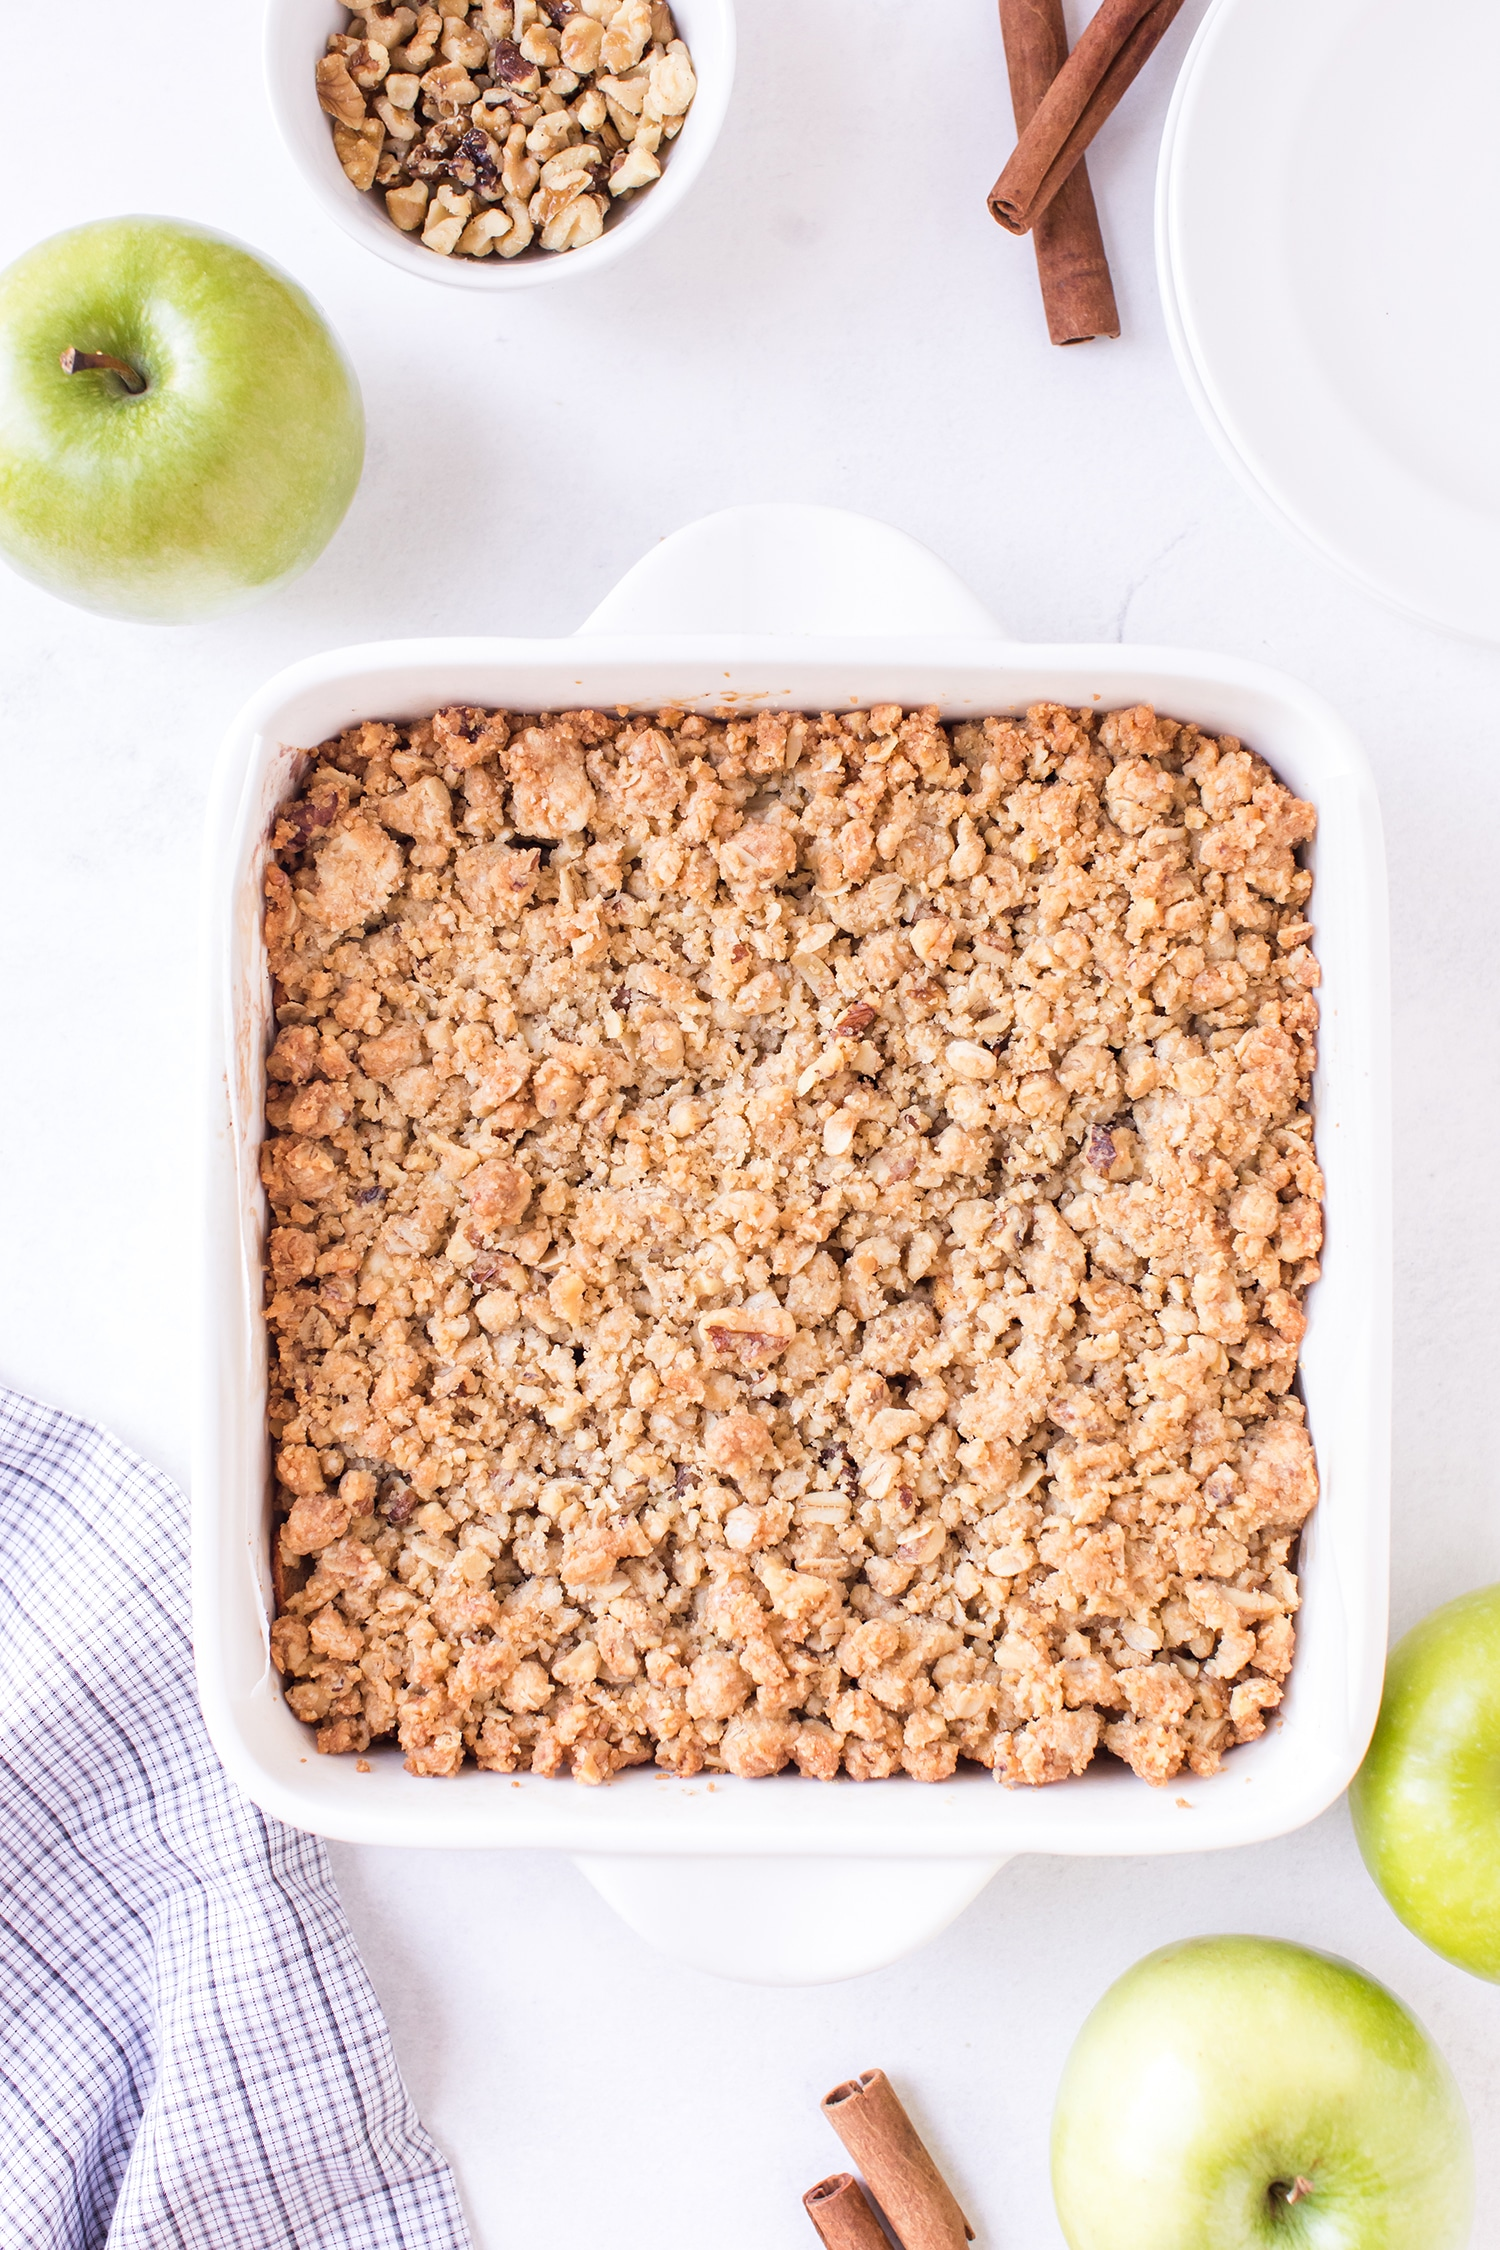 Apple pie bars with streusel topping in white backing dish with green apple on the side